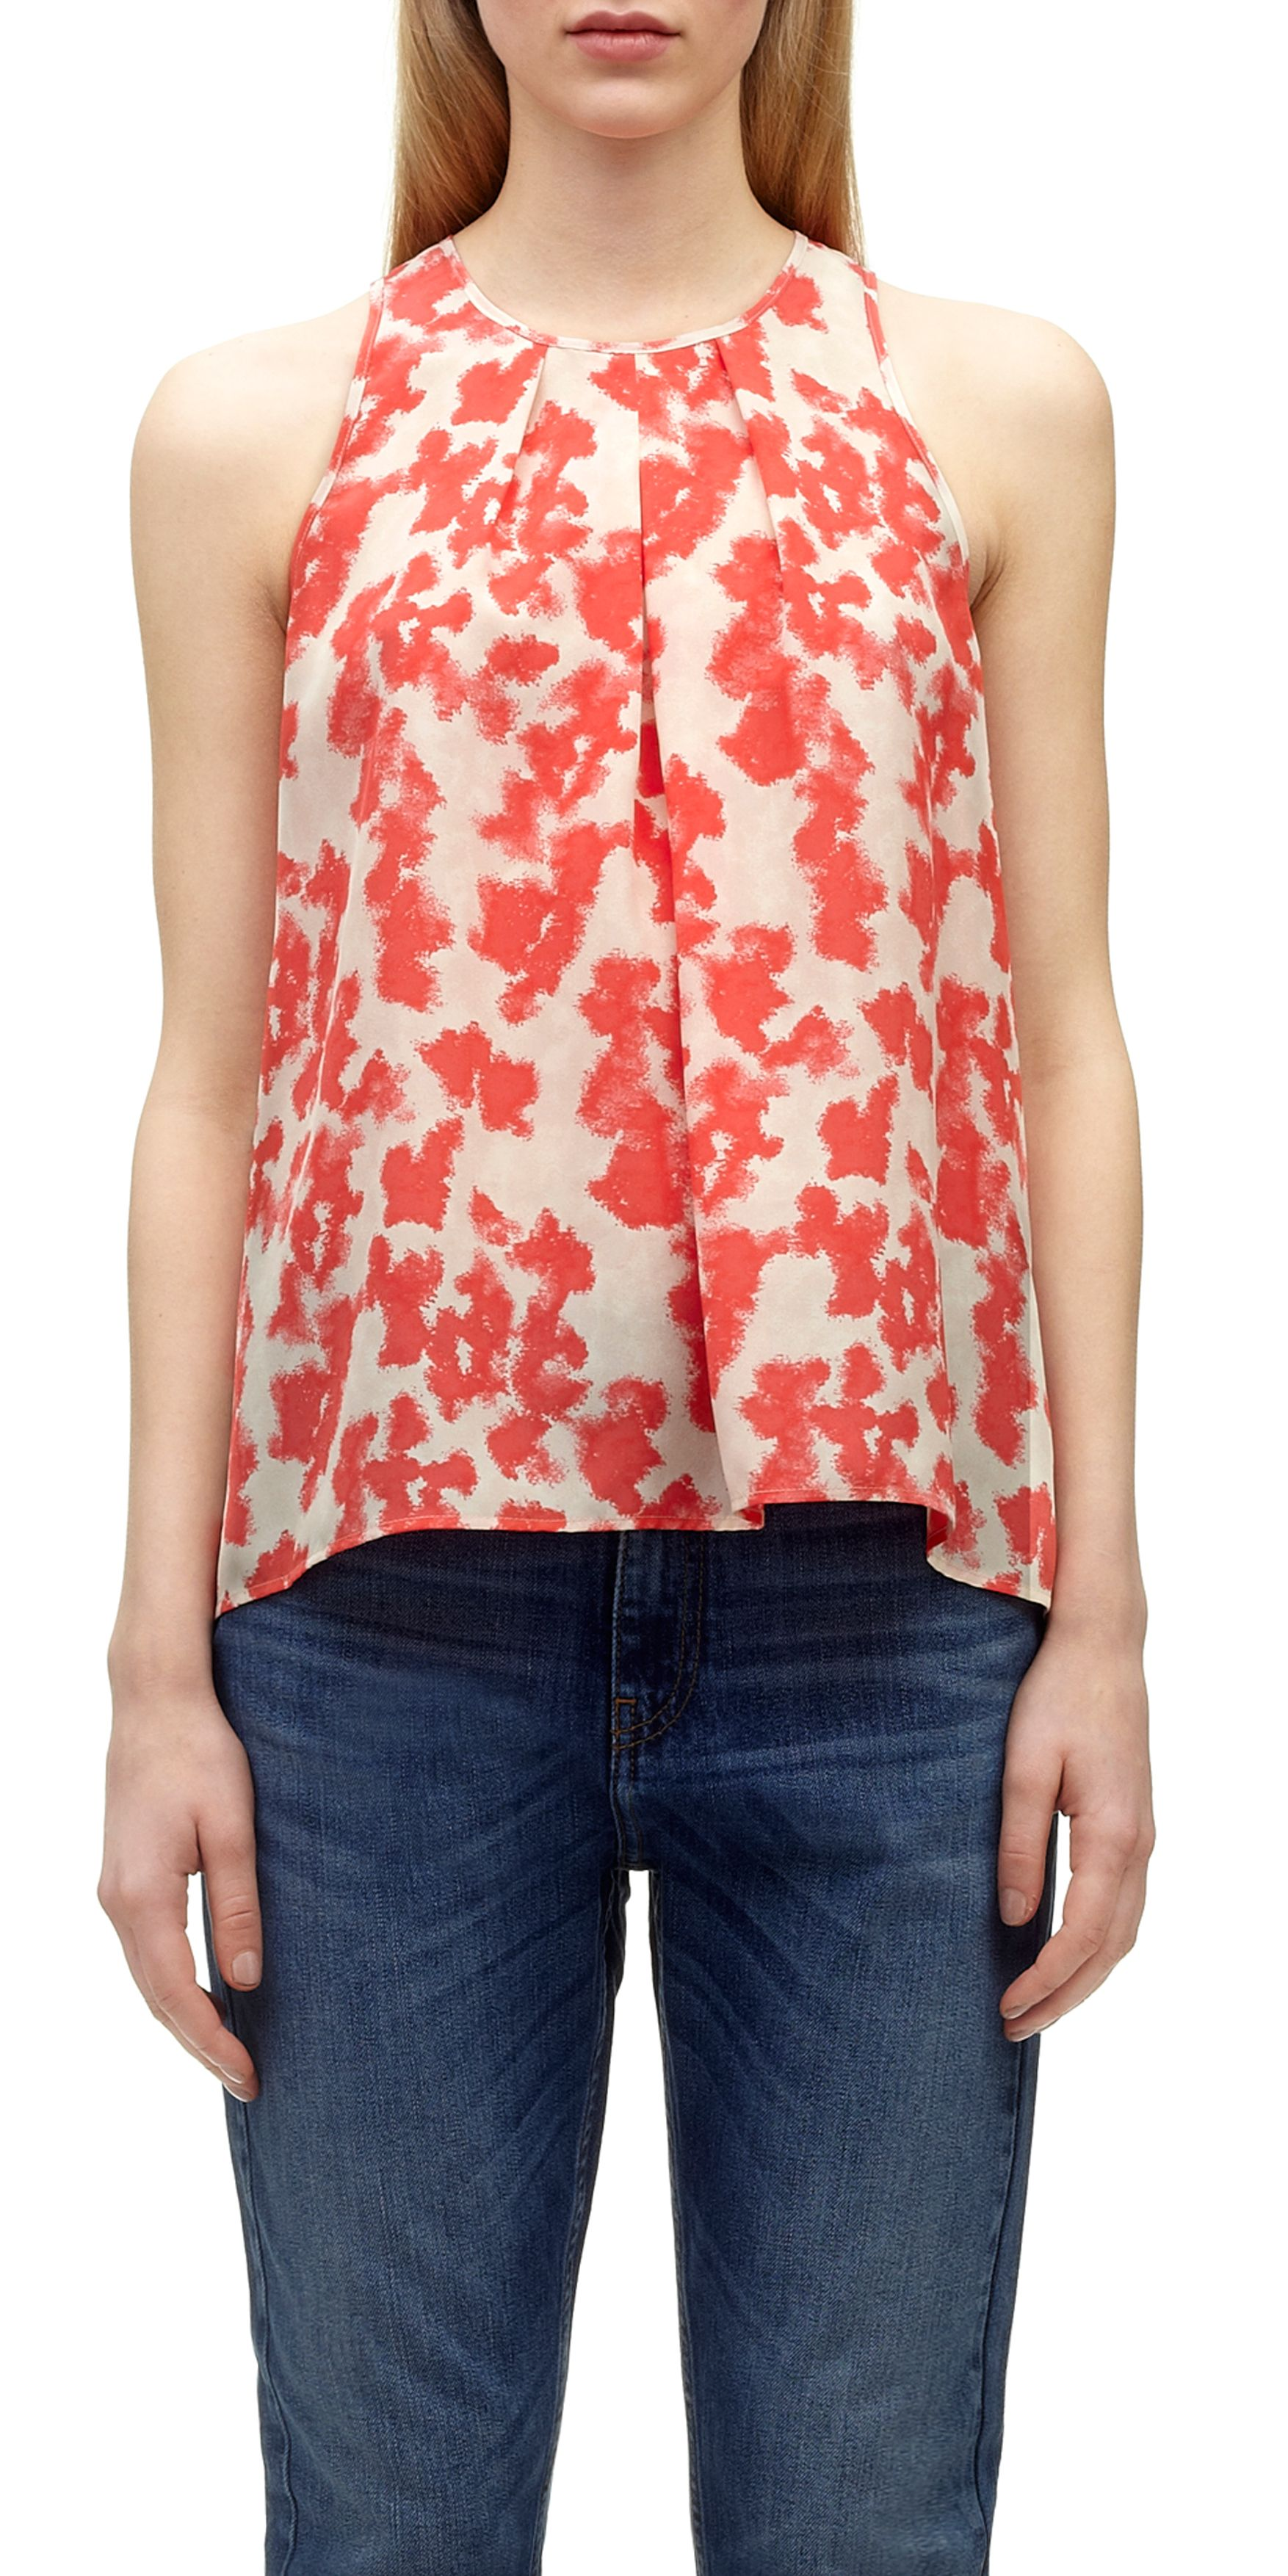 Blotted Floral Swing Top